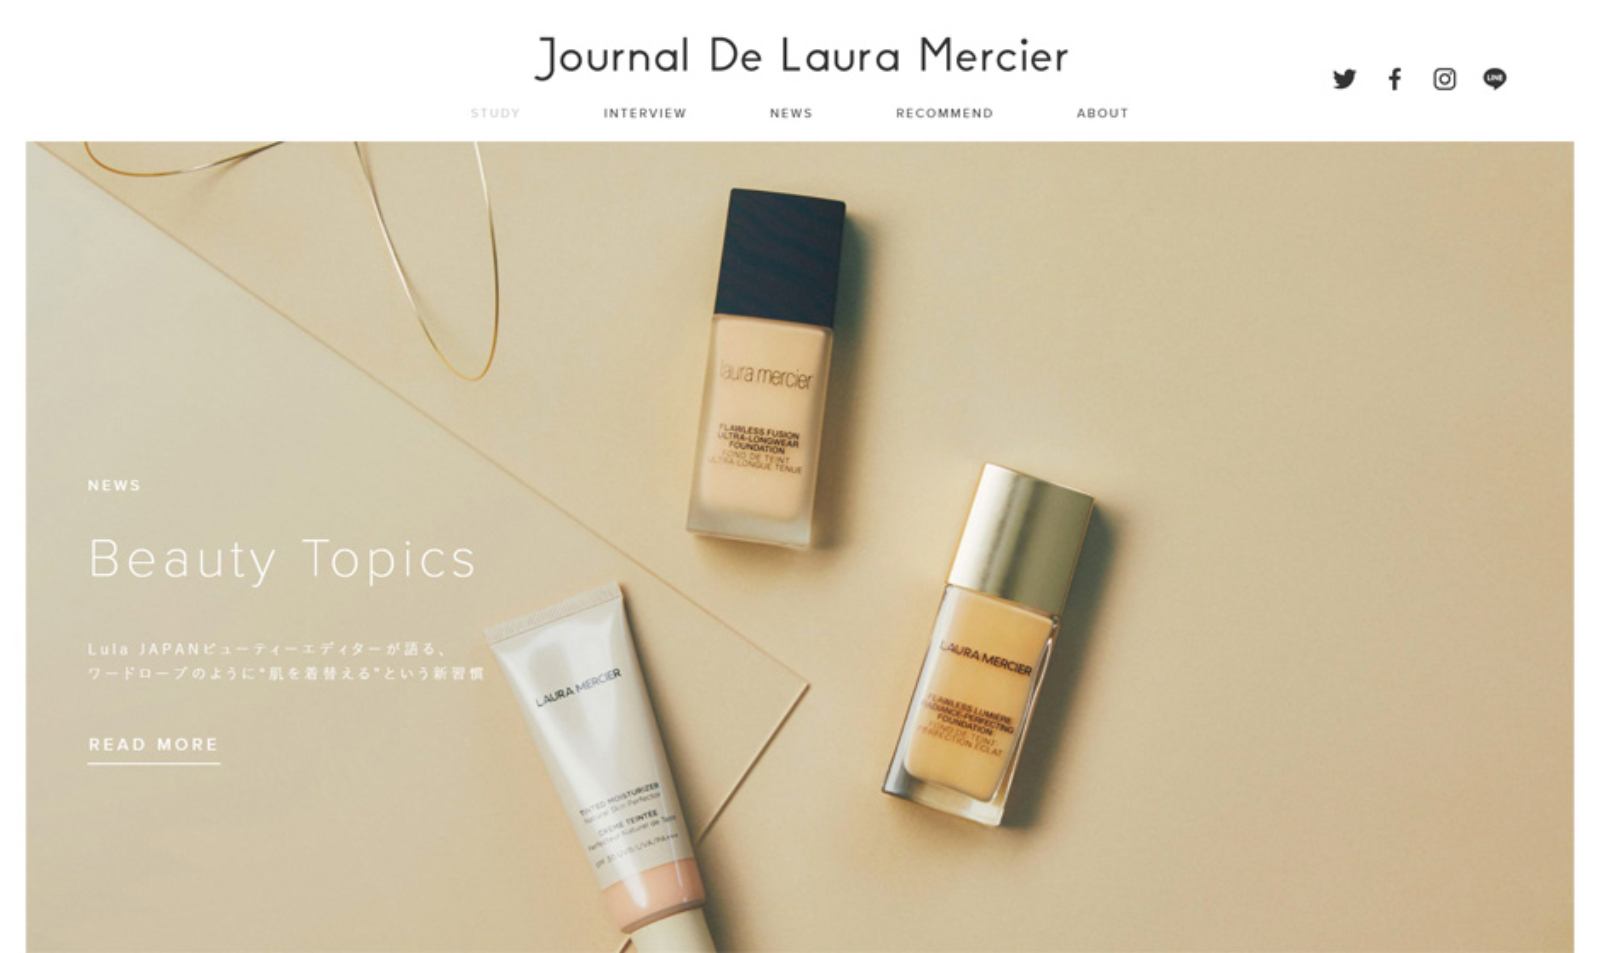 LAURA MERCIER Launched Online Magazine「Journal de Laura Mercier」